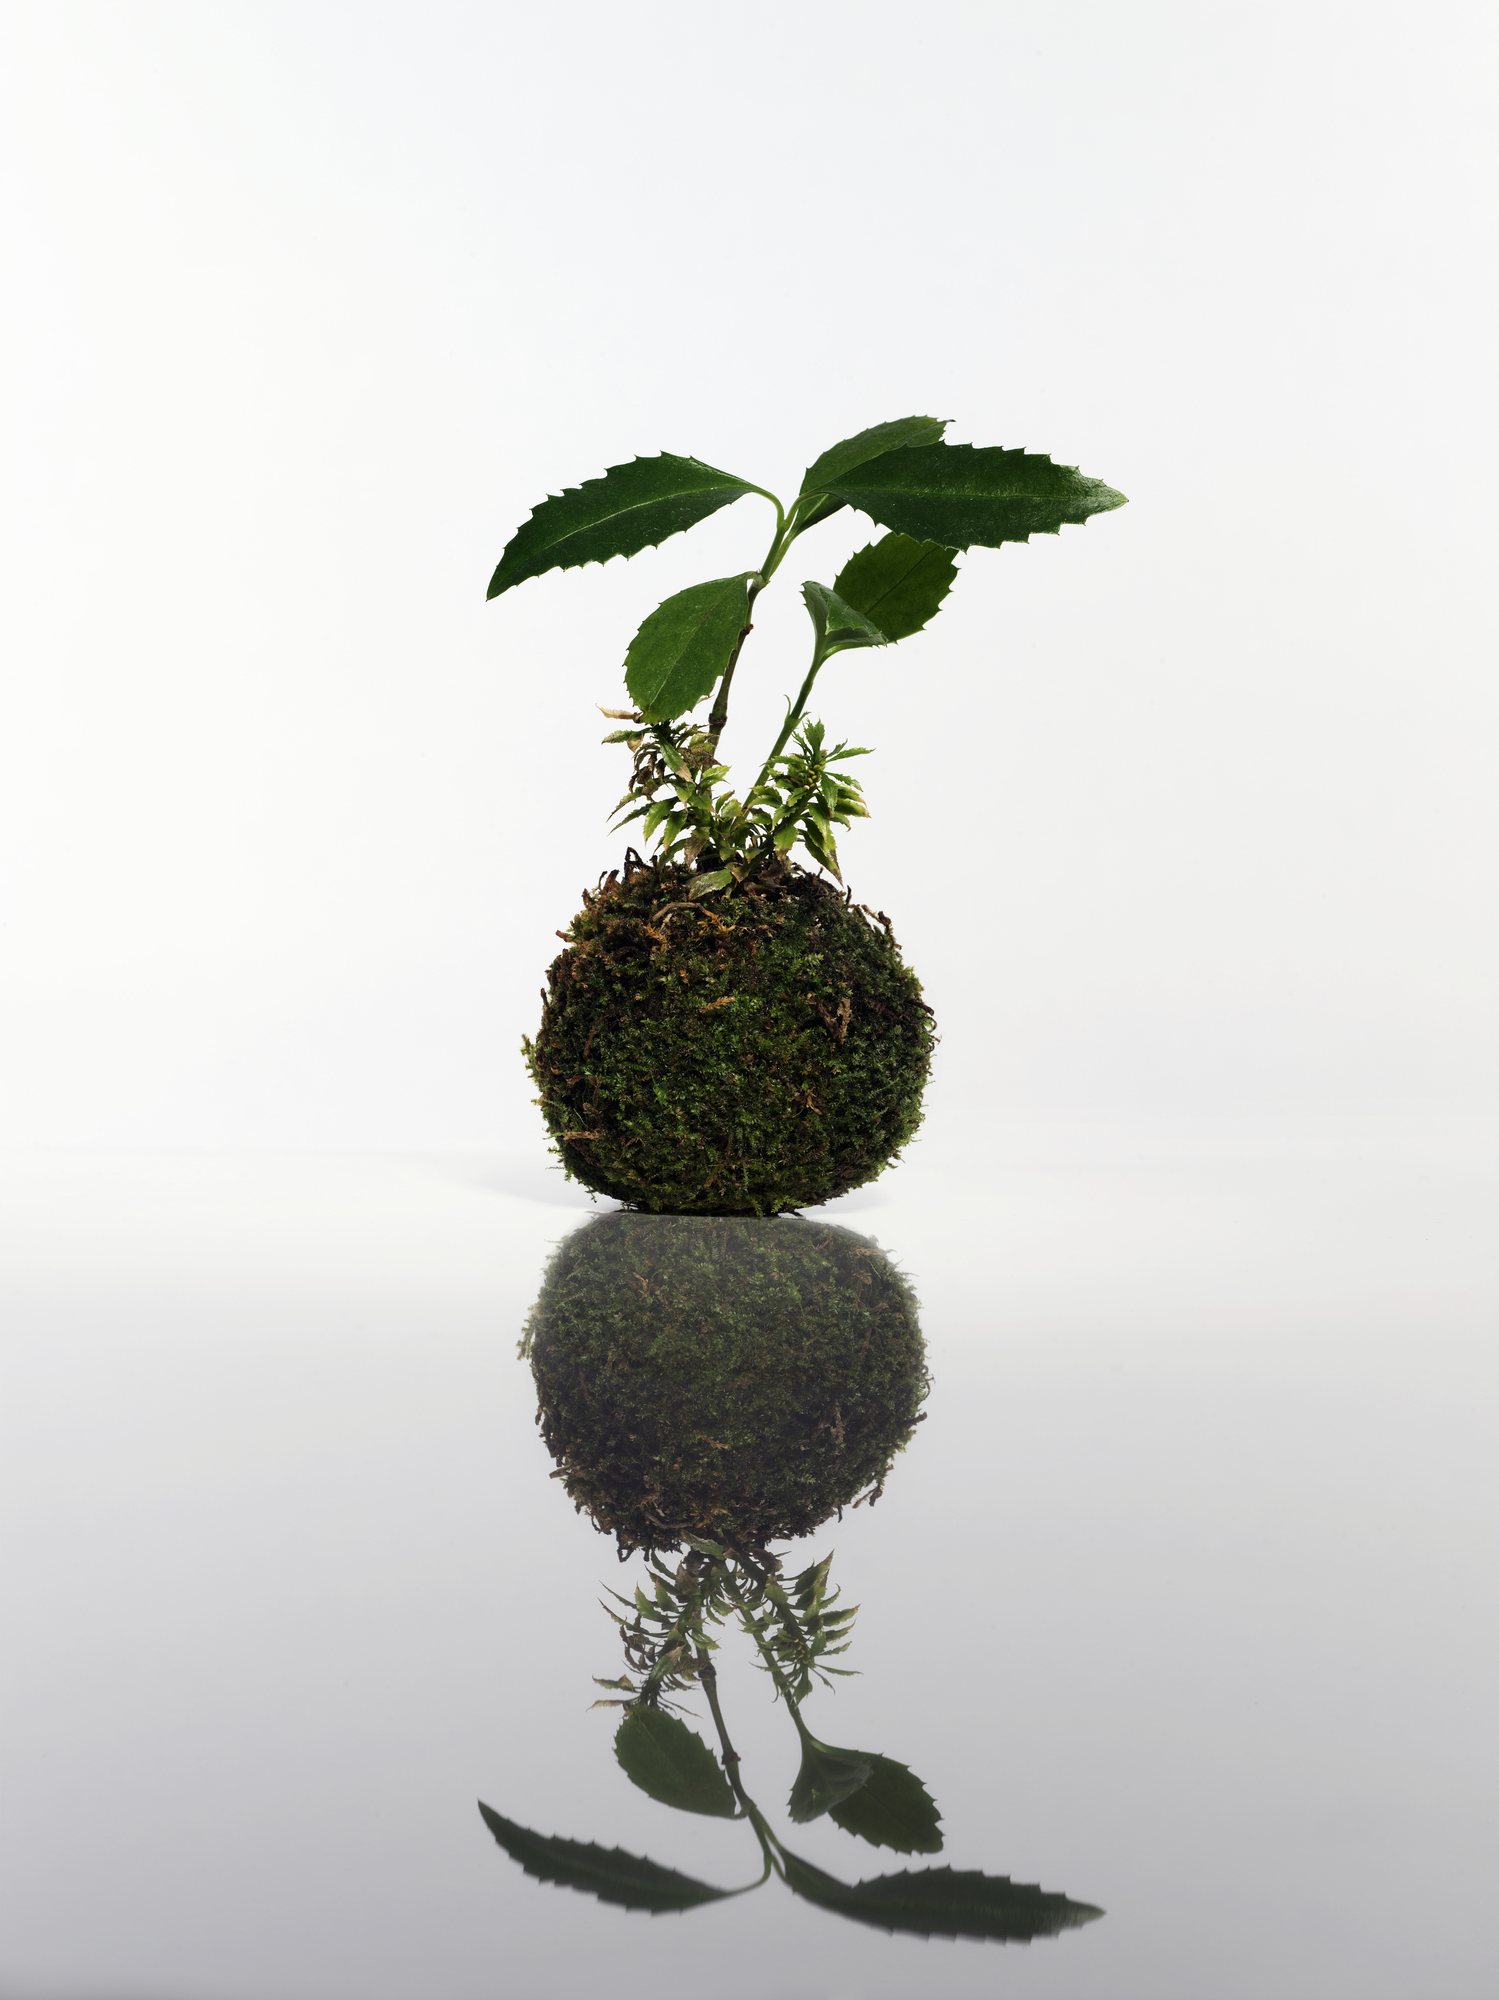 How to make a kokedama it 39 s an indoor gardening trend for Indoor gardening trends